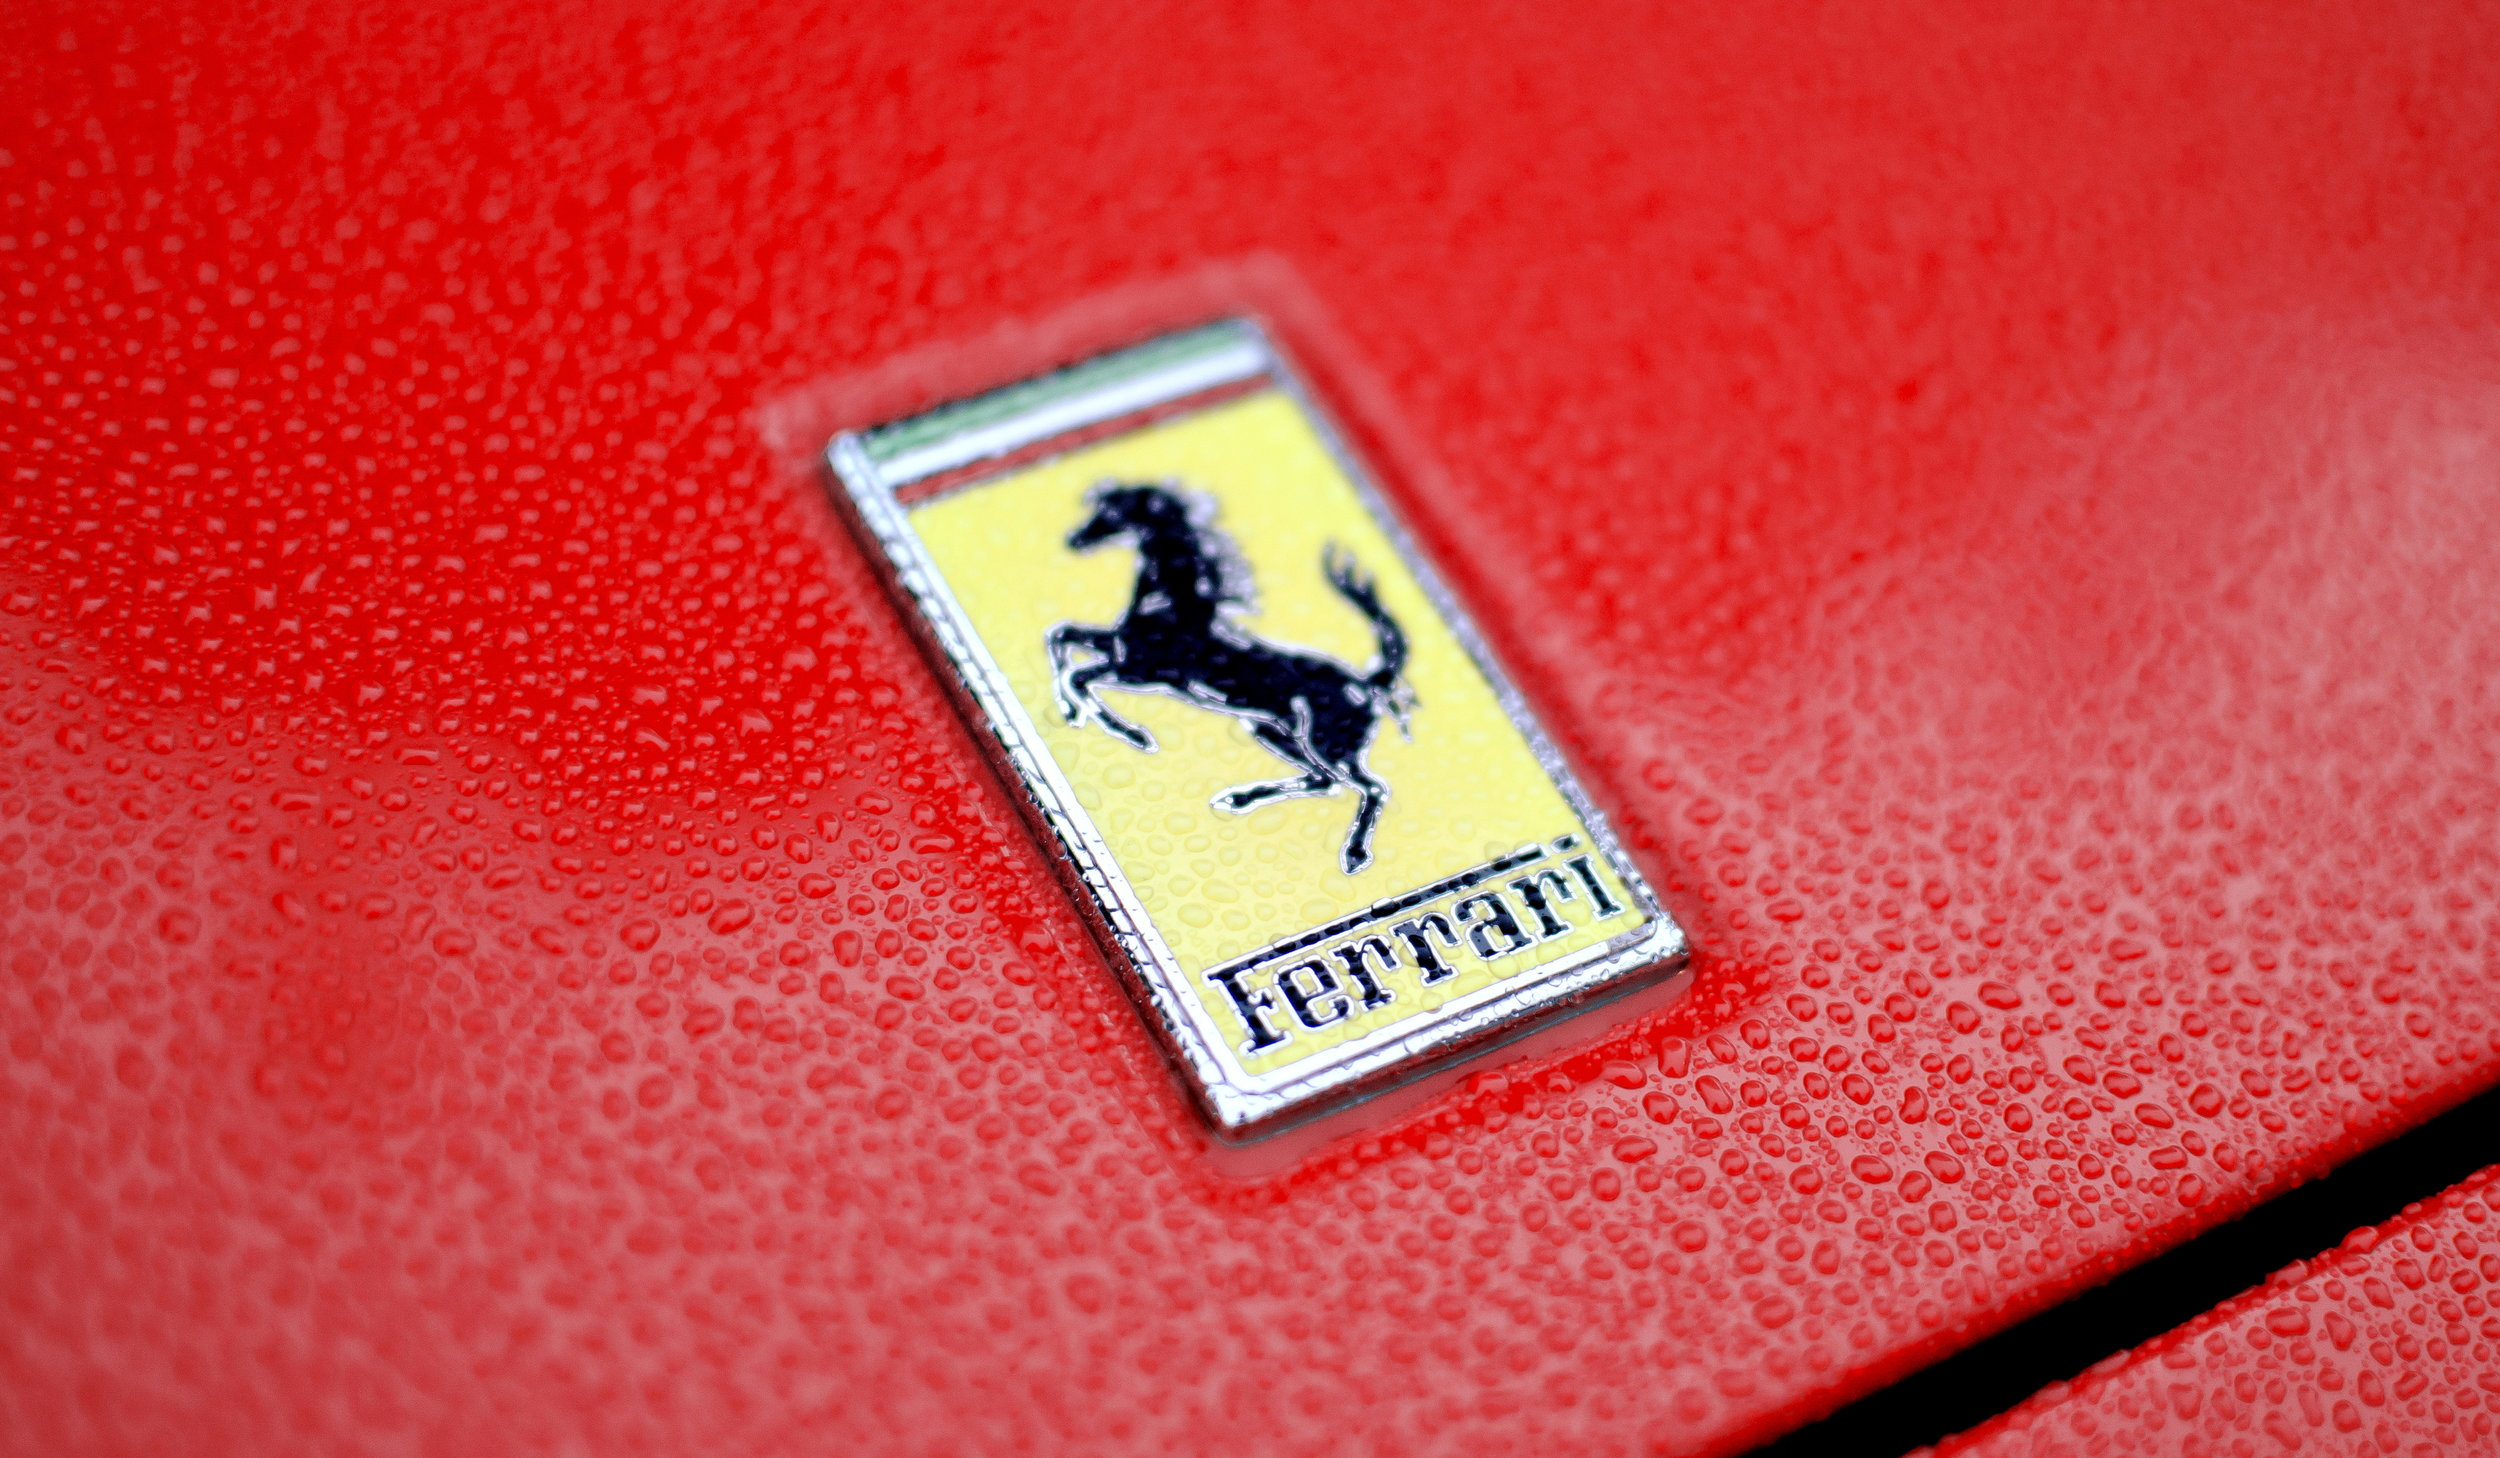 By Axion23 (Ferrari Emblem) [CC BY 2.0 (http://creativecommons.org/licenses/by/2.0)], via  Wikimedia Commons .